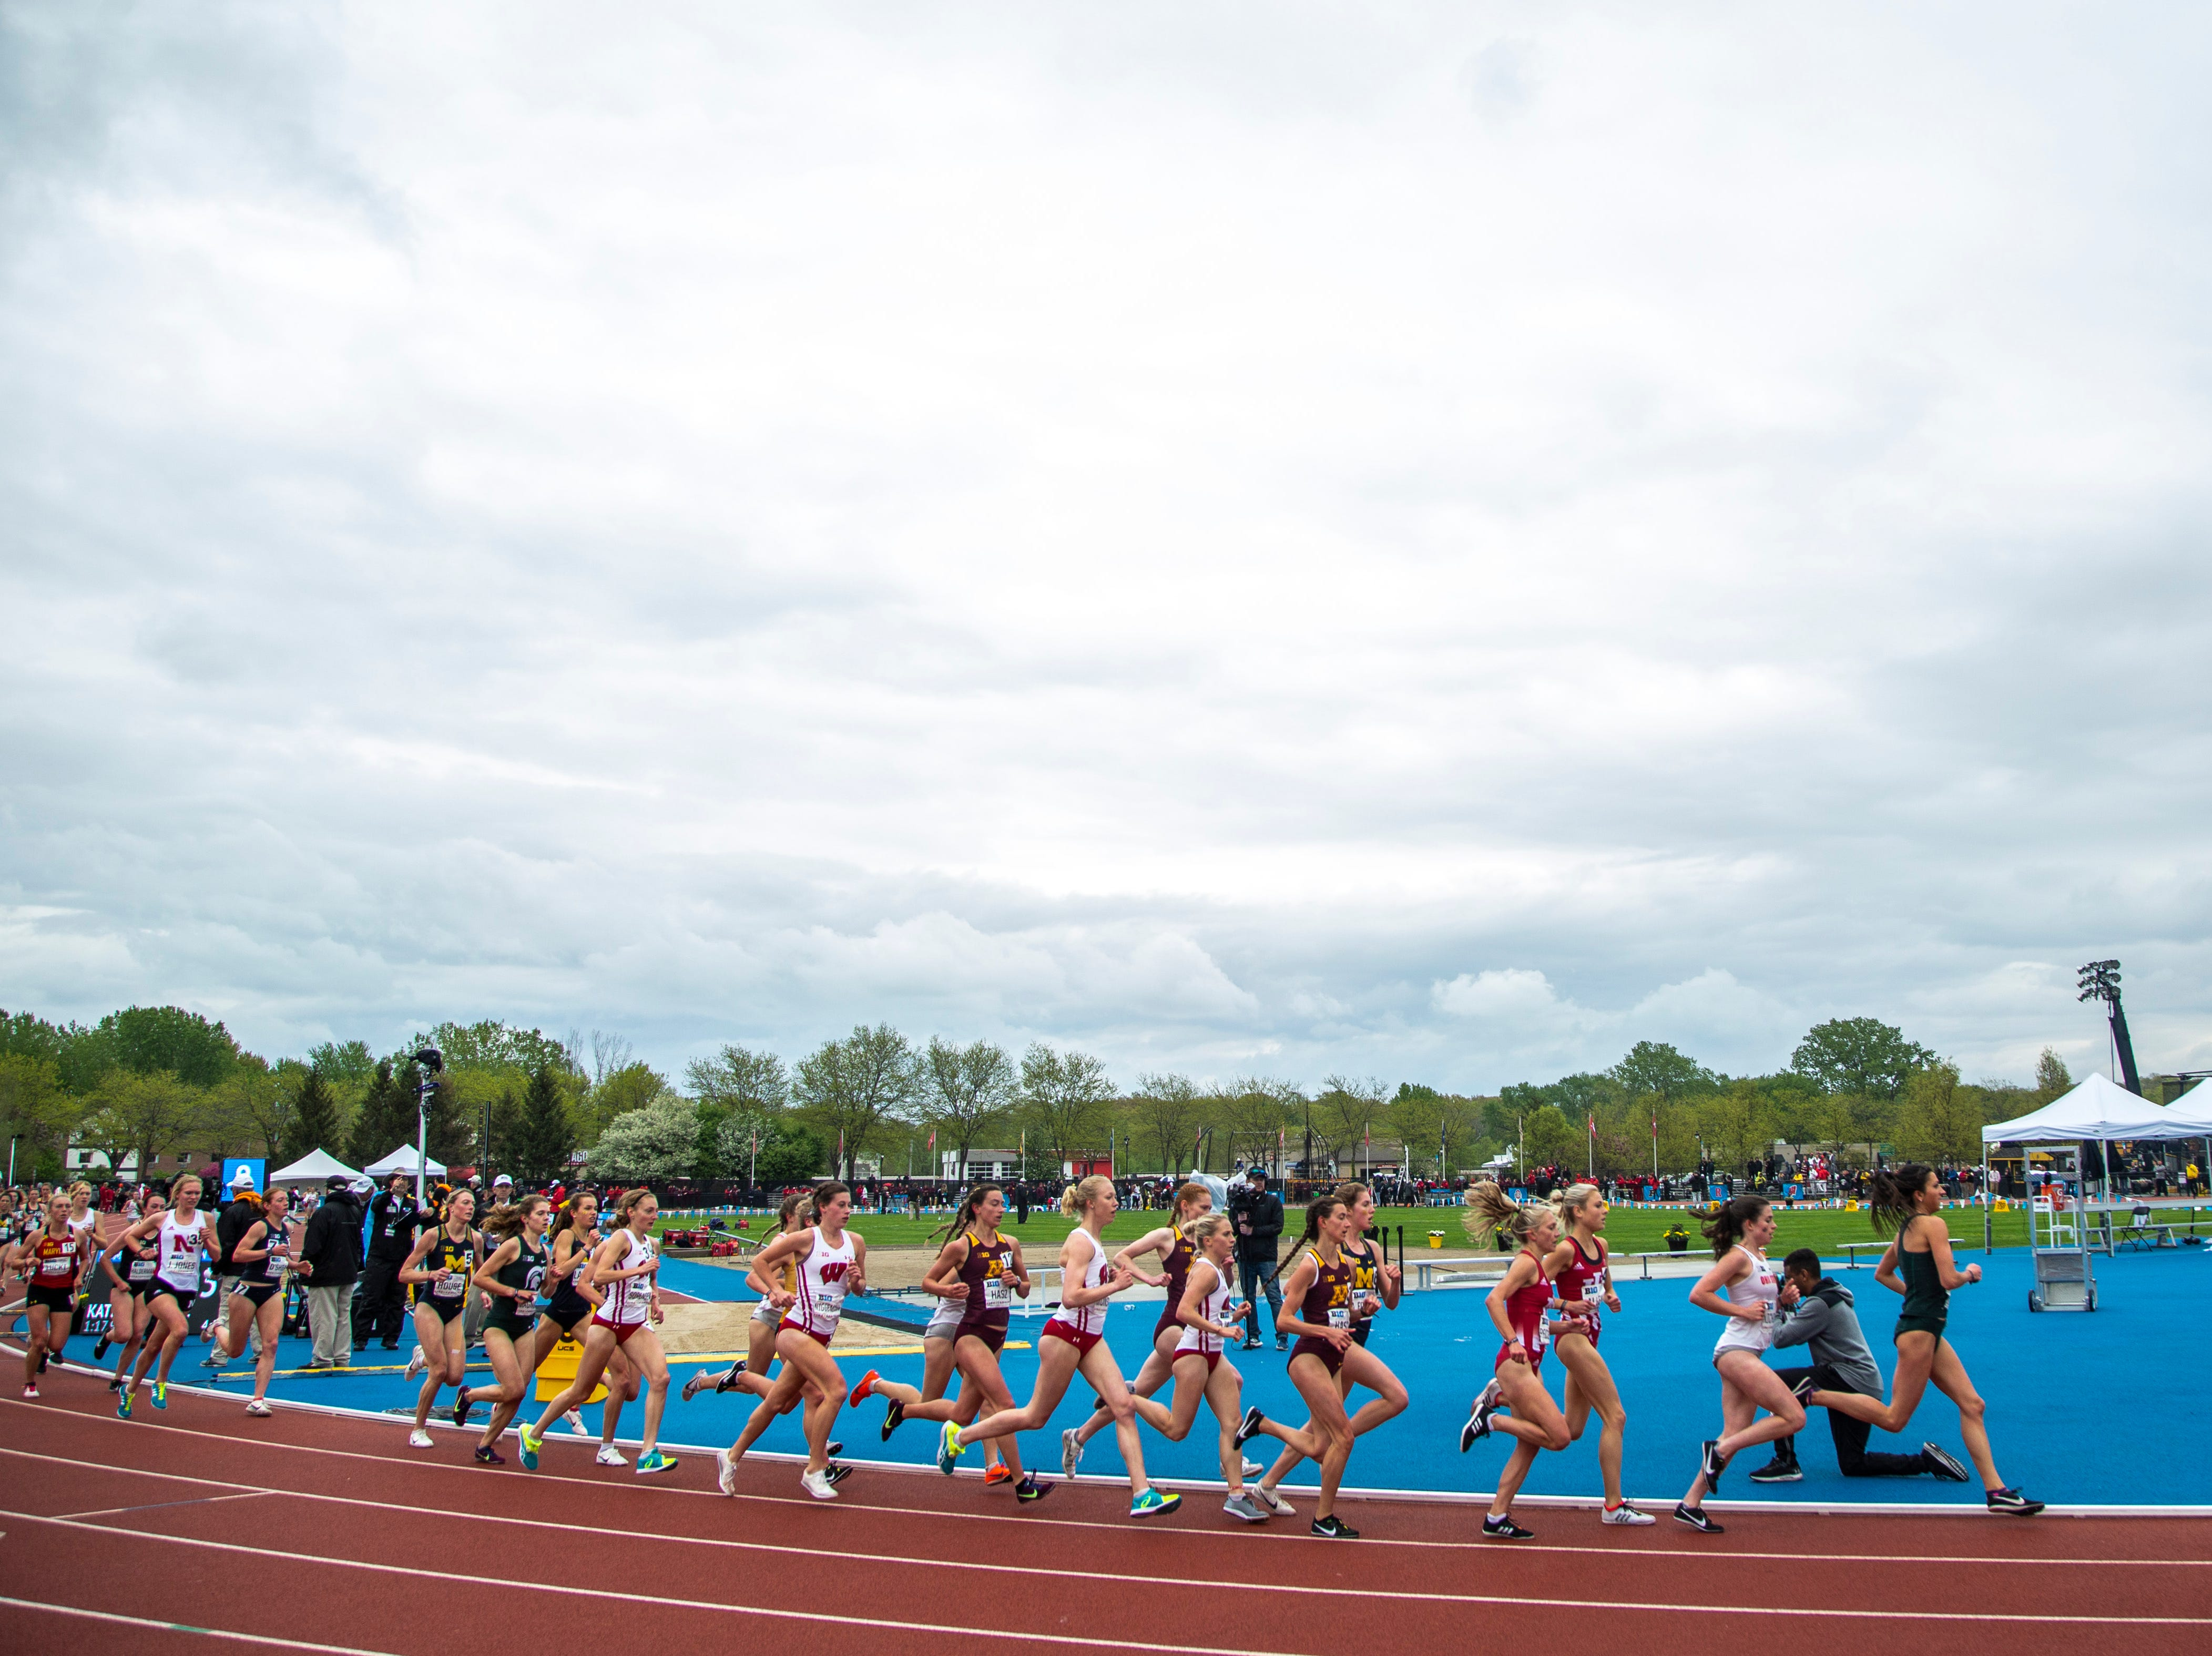 The field of women compete in the 5,000 meter final during the final day of Big Ten track and field outdoor championships, Sunday, May 12, 2019, at Francis X. Cretzmeyer Track on the University of Iowa campus in Iowa City, Iowa.